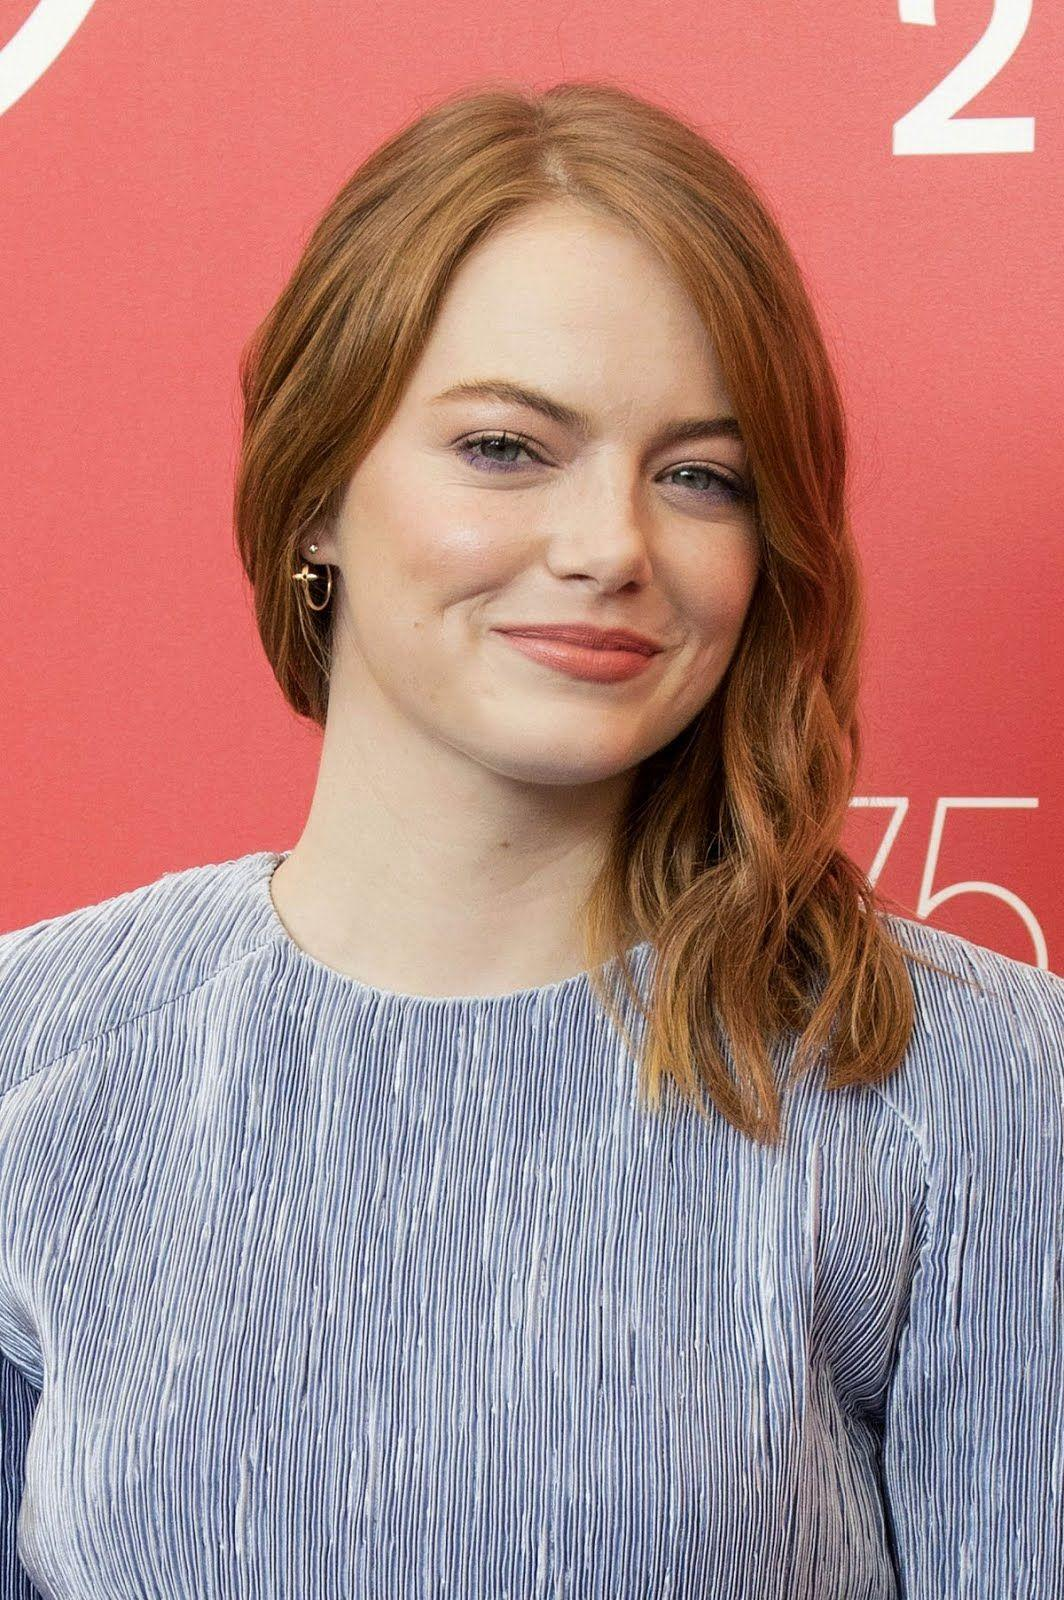 HD Wallpapers: Emma Stone At The Favourite Photocall At 2018 Venice